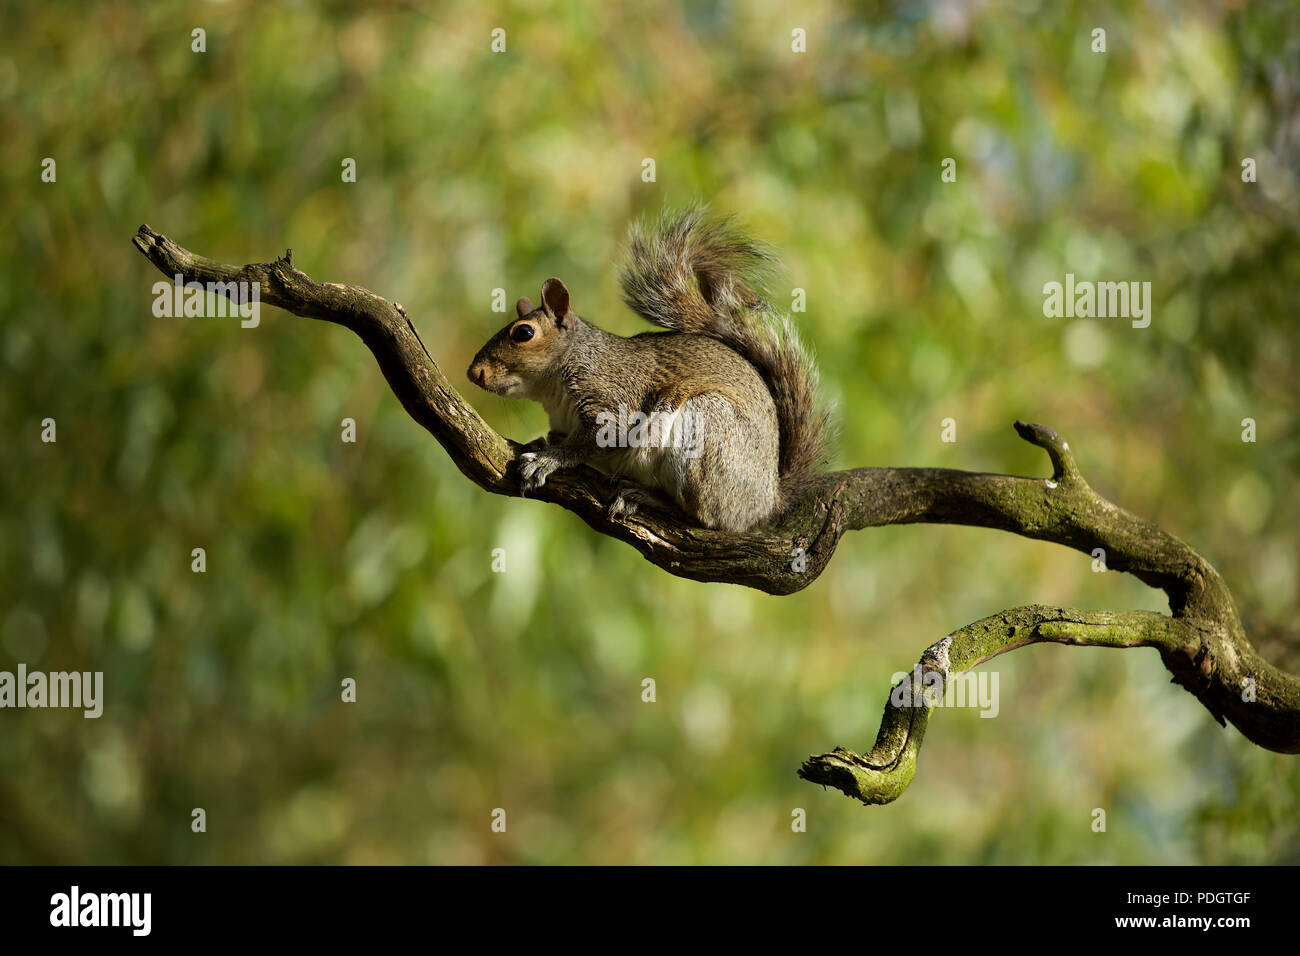 Grey Squirrel caught in the open on this Gnarled tree branch - Stock Image